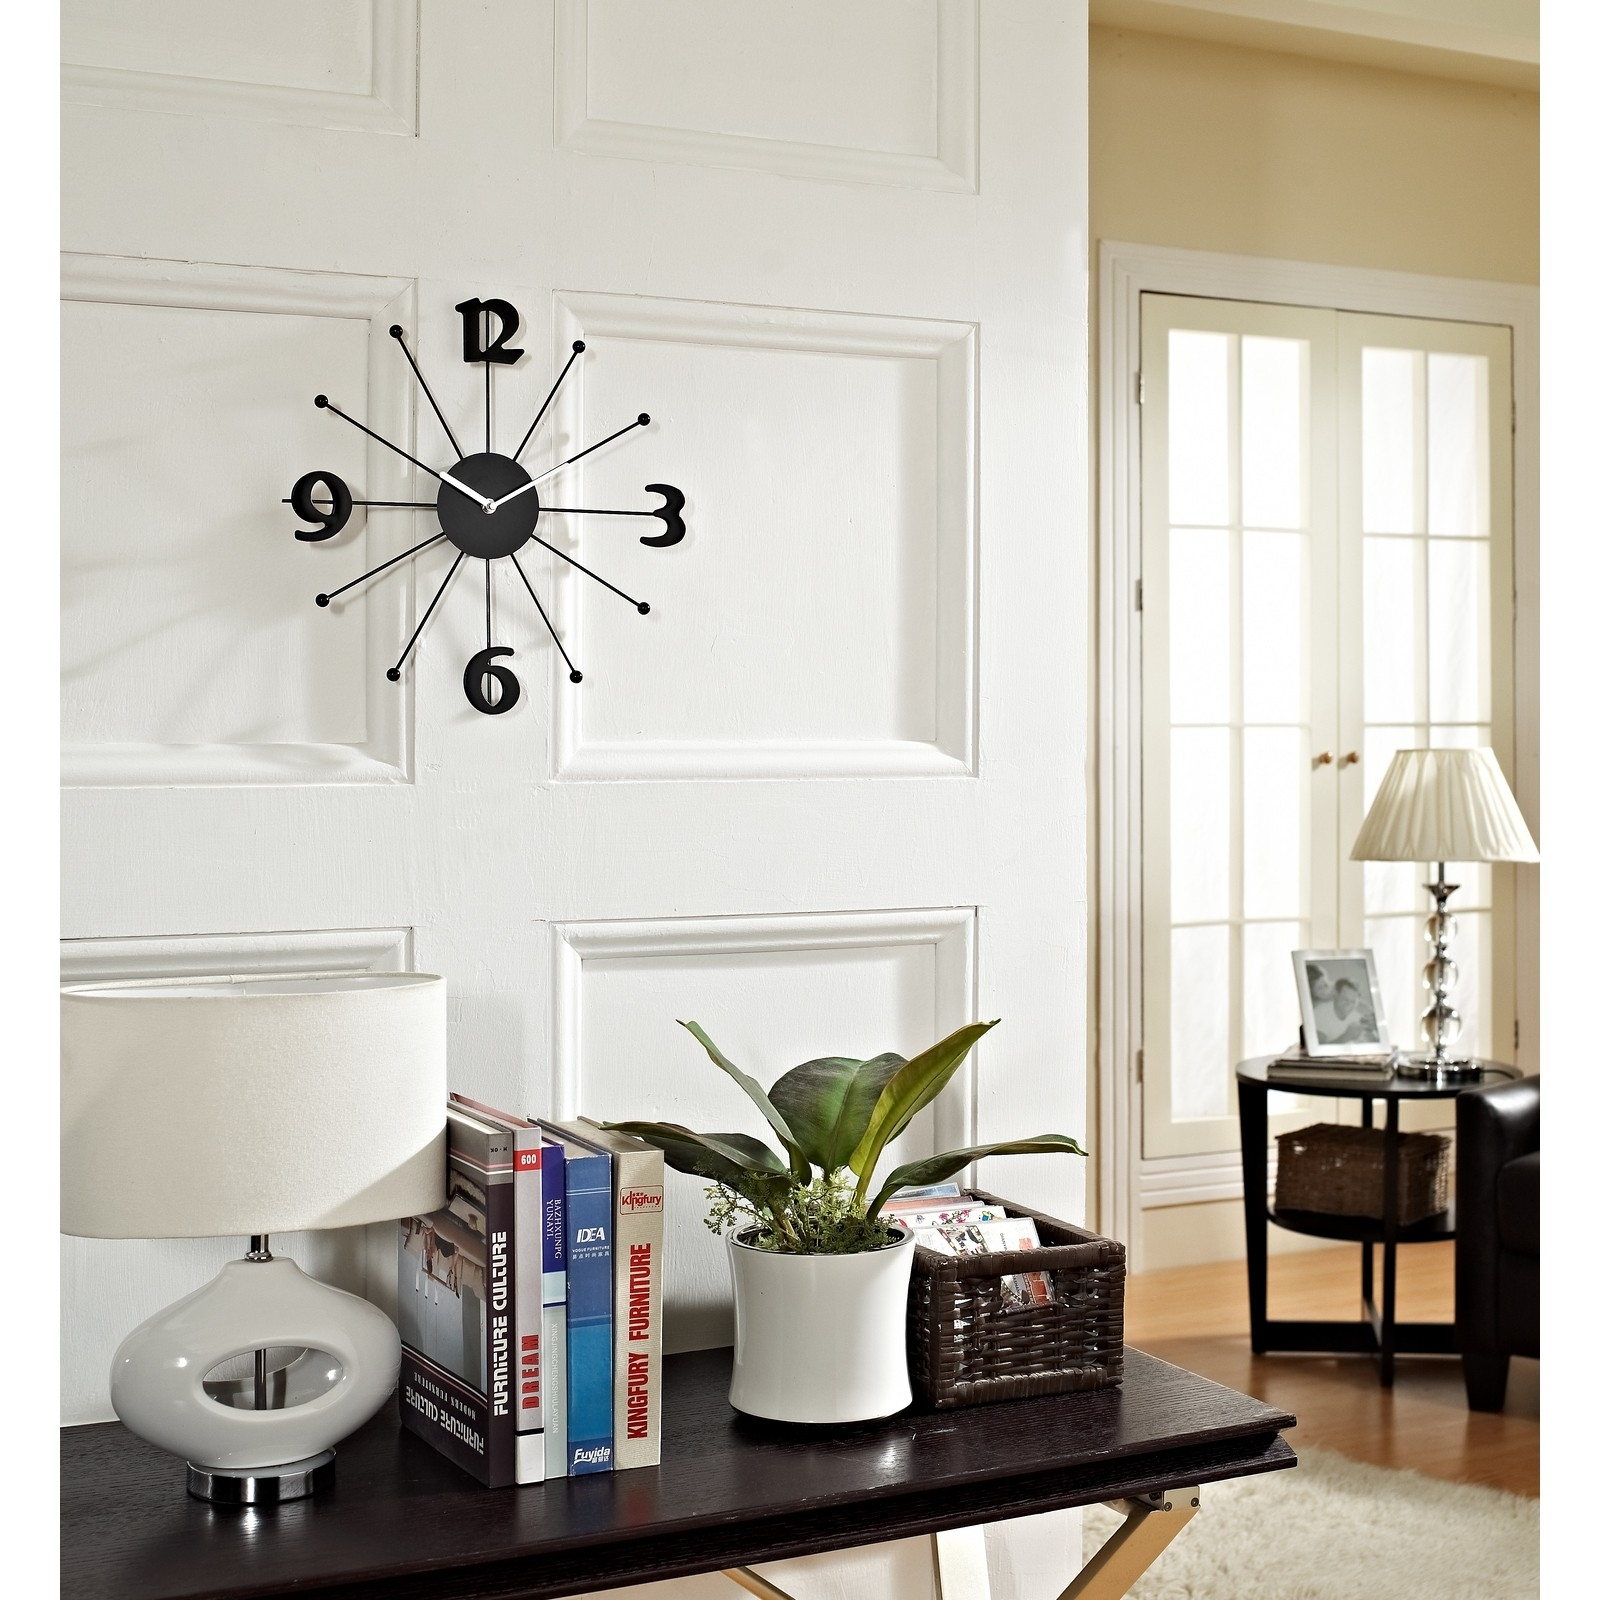 Decorative Fancy Wall Clocks | Homesfeed Pertaining To Most Current Clock Wall Accents (View 15 of 15)